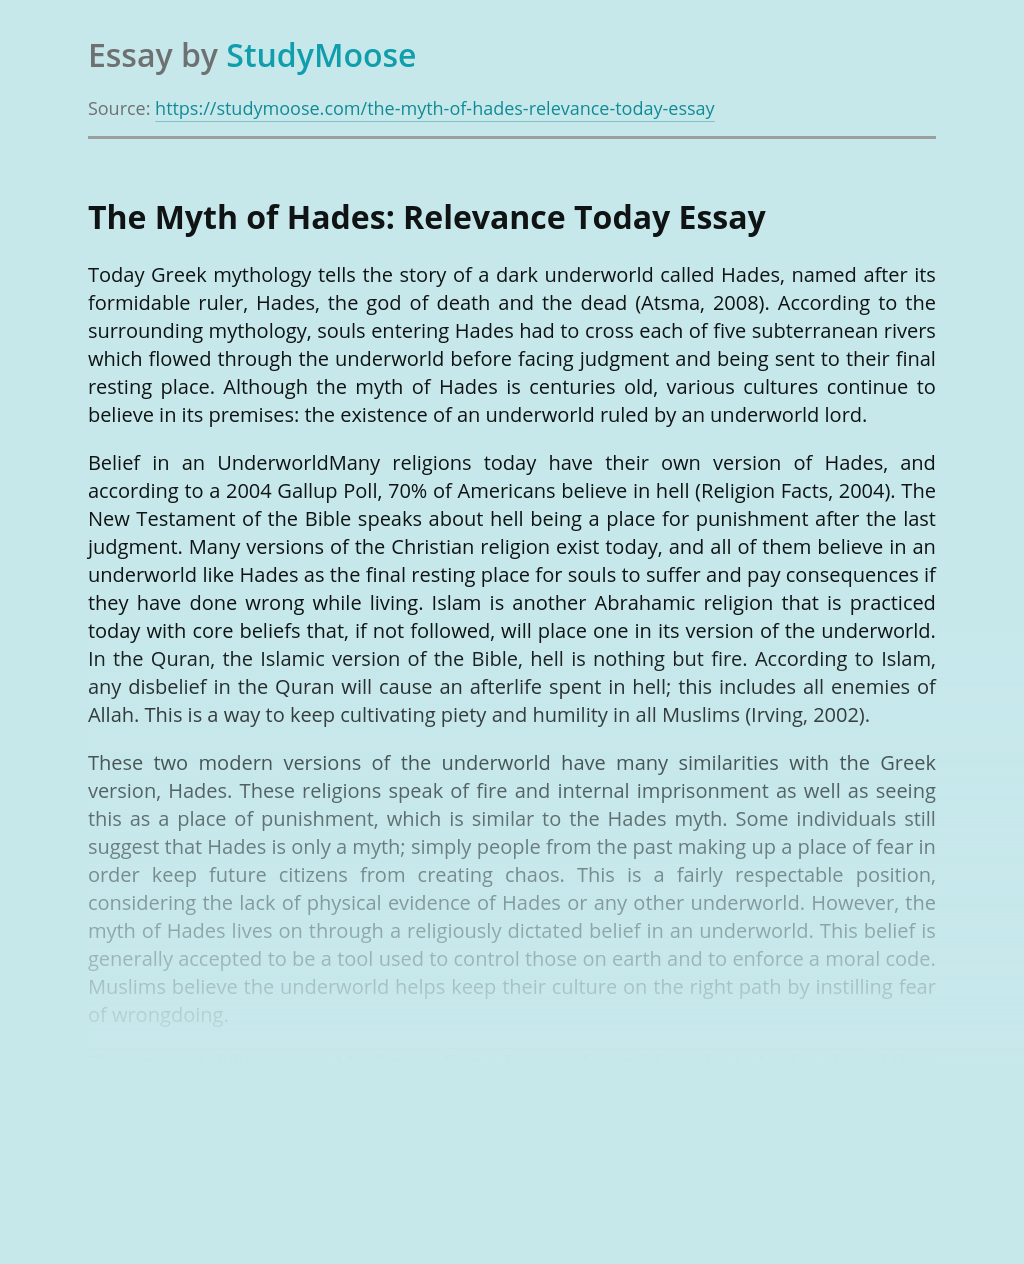 The Myth of Hades: Relevance Today